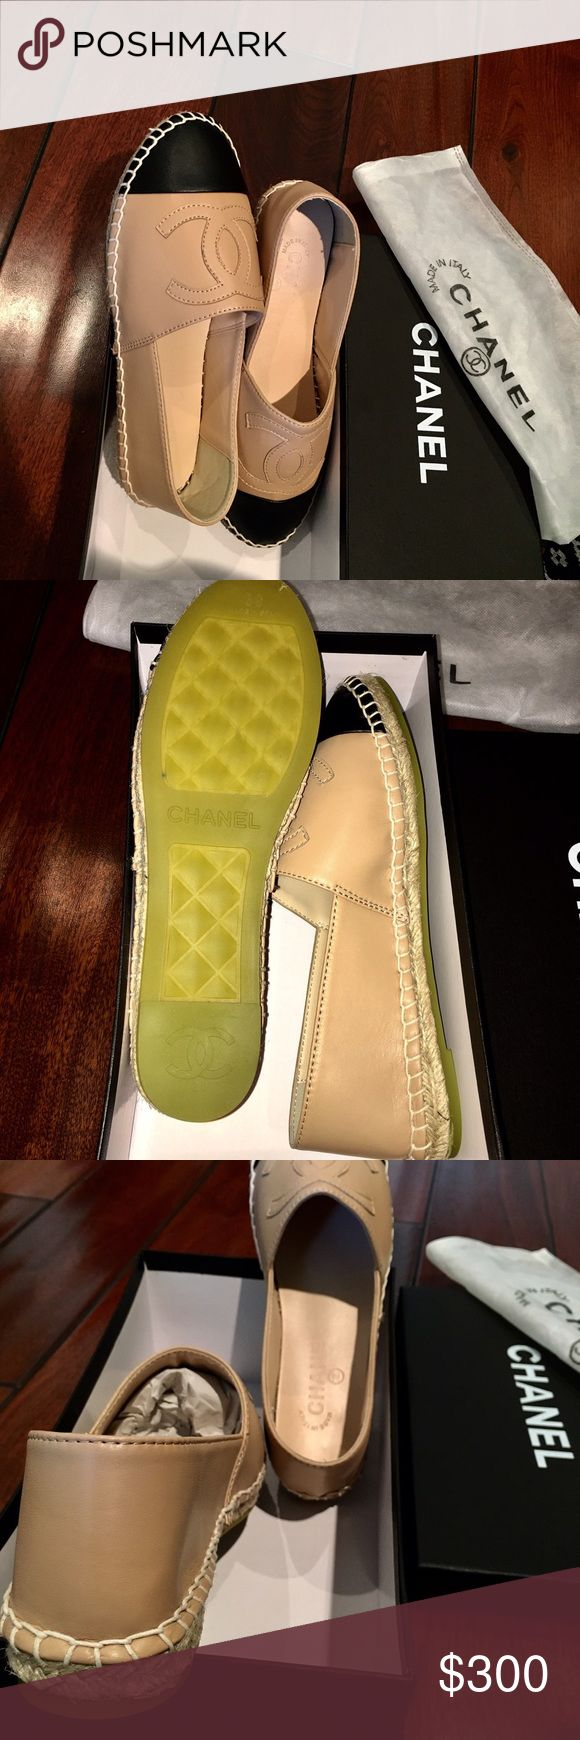 CHANEL ESPADRILLES Price is firm and reflects authenticity. Never worn. True to size. Selling a true US 7.5 (bottom says 39) AND a true us 7 (bottom says 38). Comes with box & dust bags. Will sell for cheaper on other apps (Ven-Mo, Pay.P) CHANEL Shoes Espadrilles